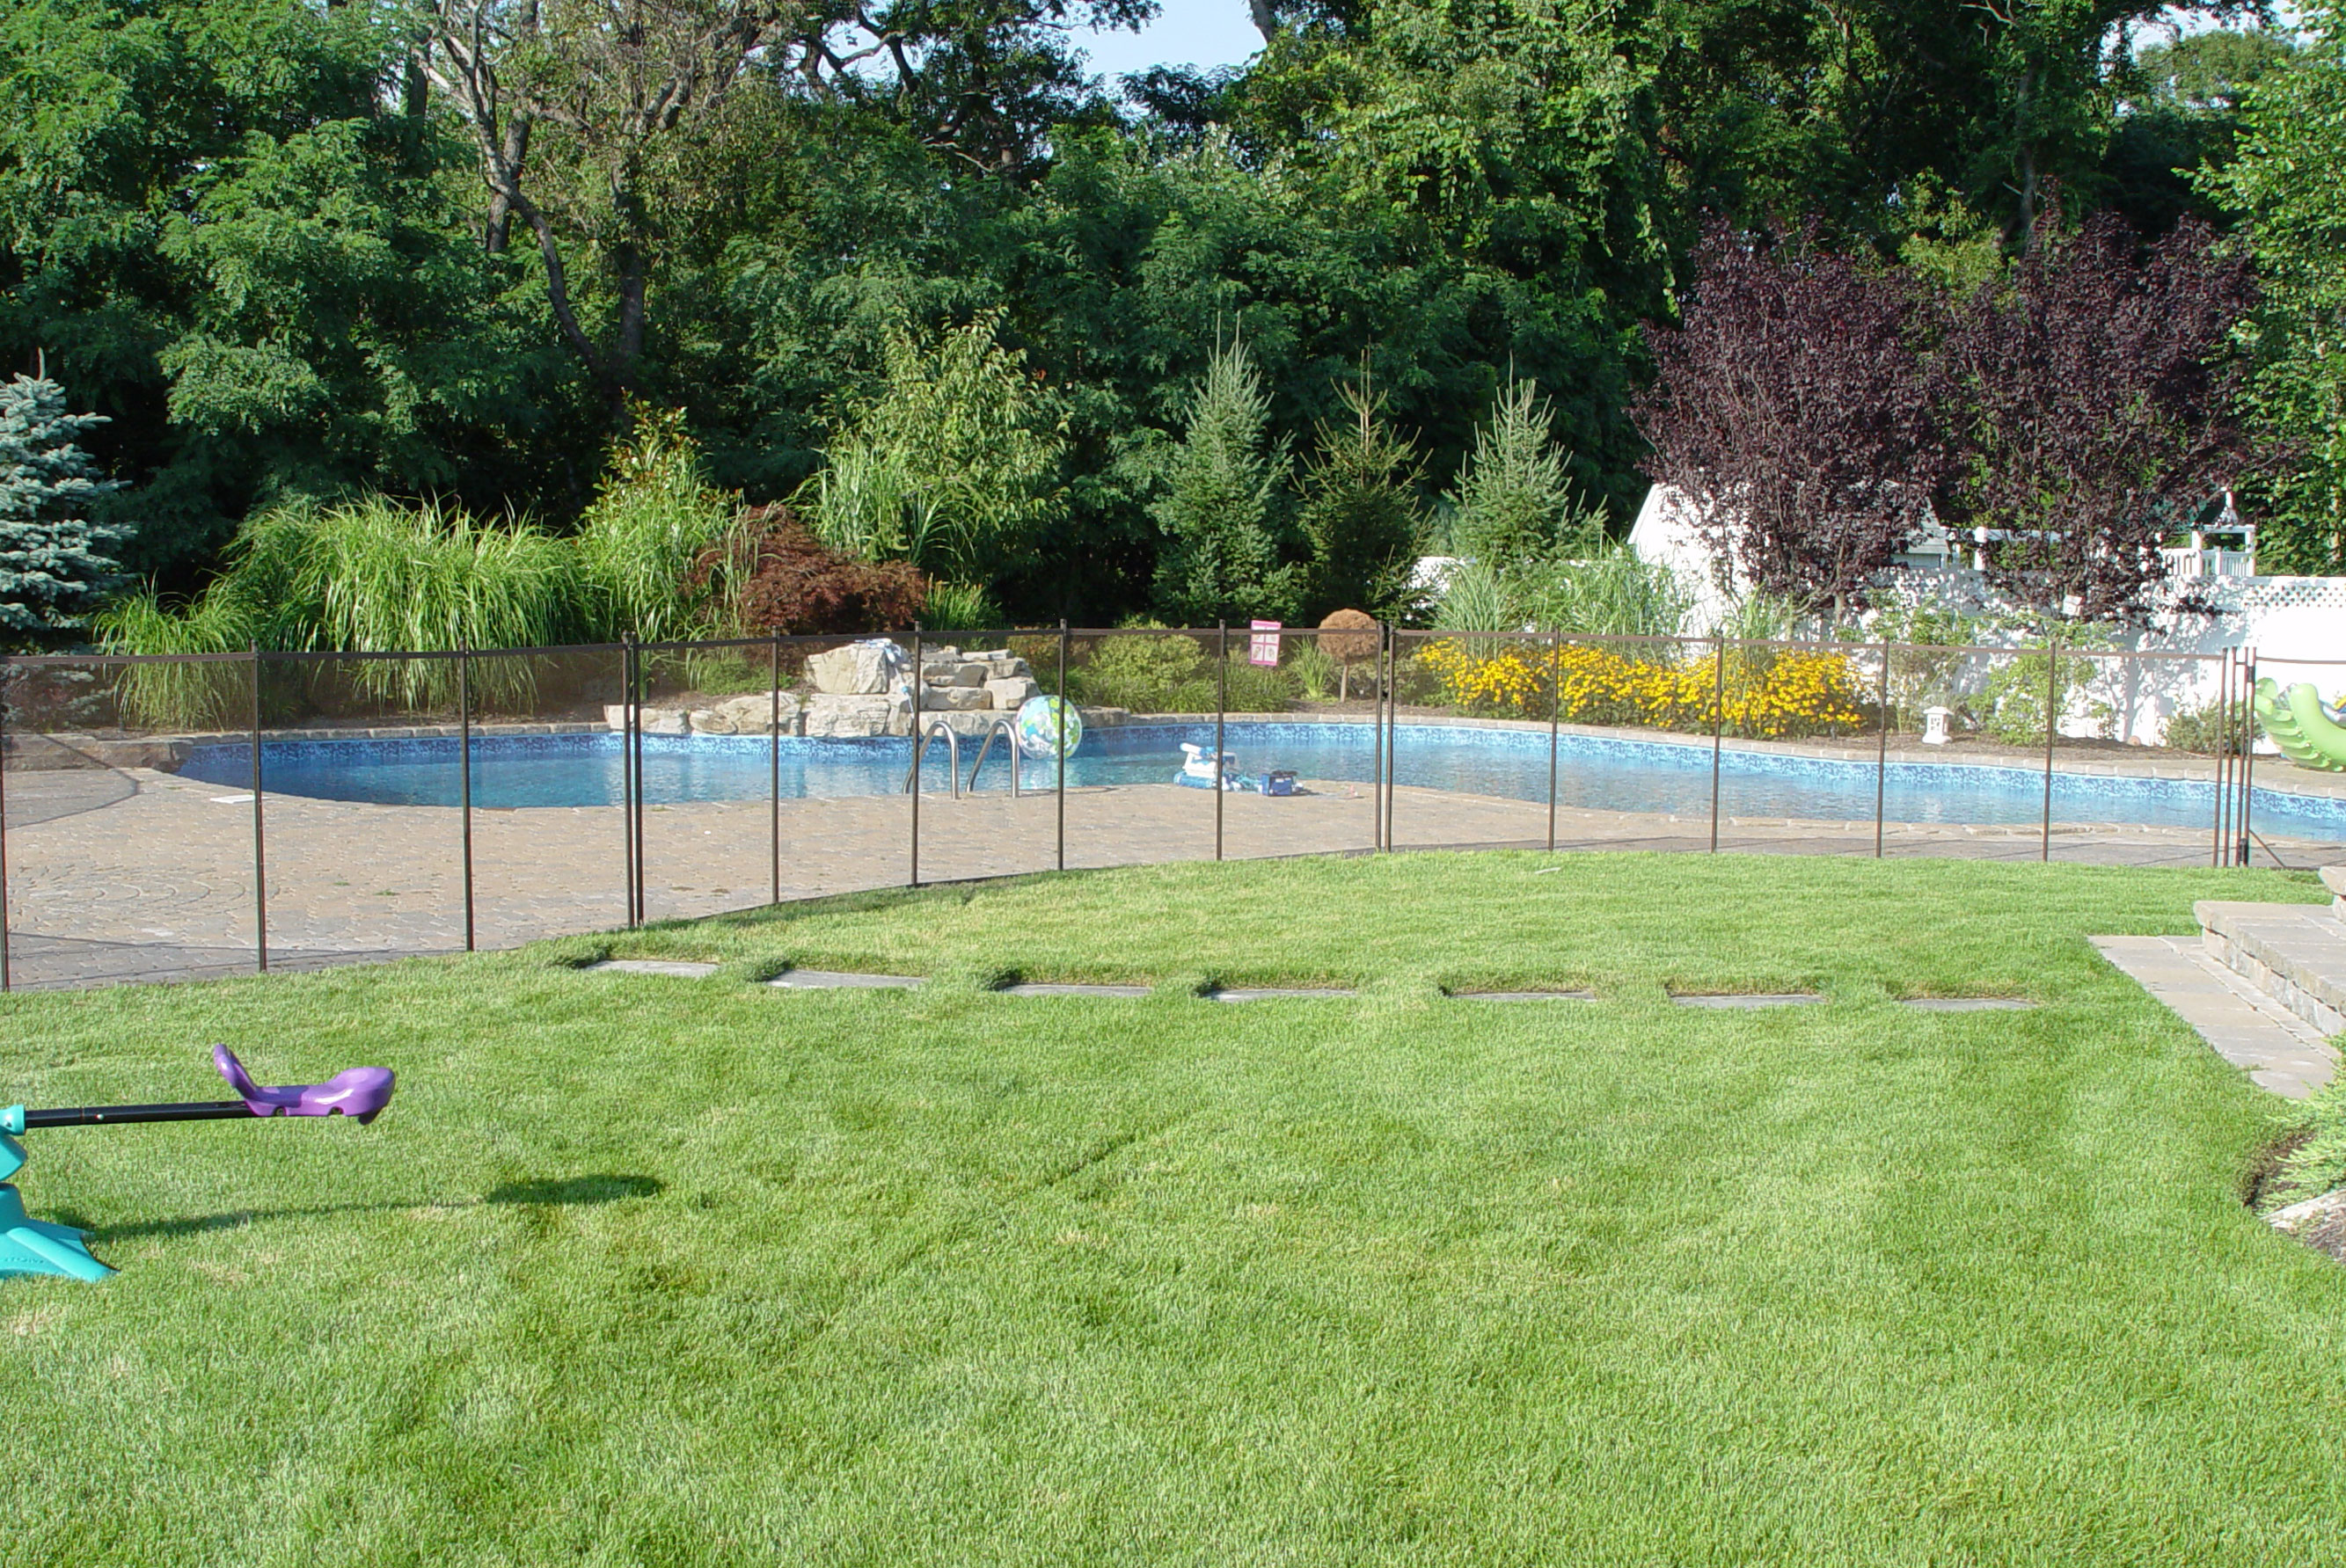 Sacramento pool fencing - Swimming pool fencing options consider ...